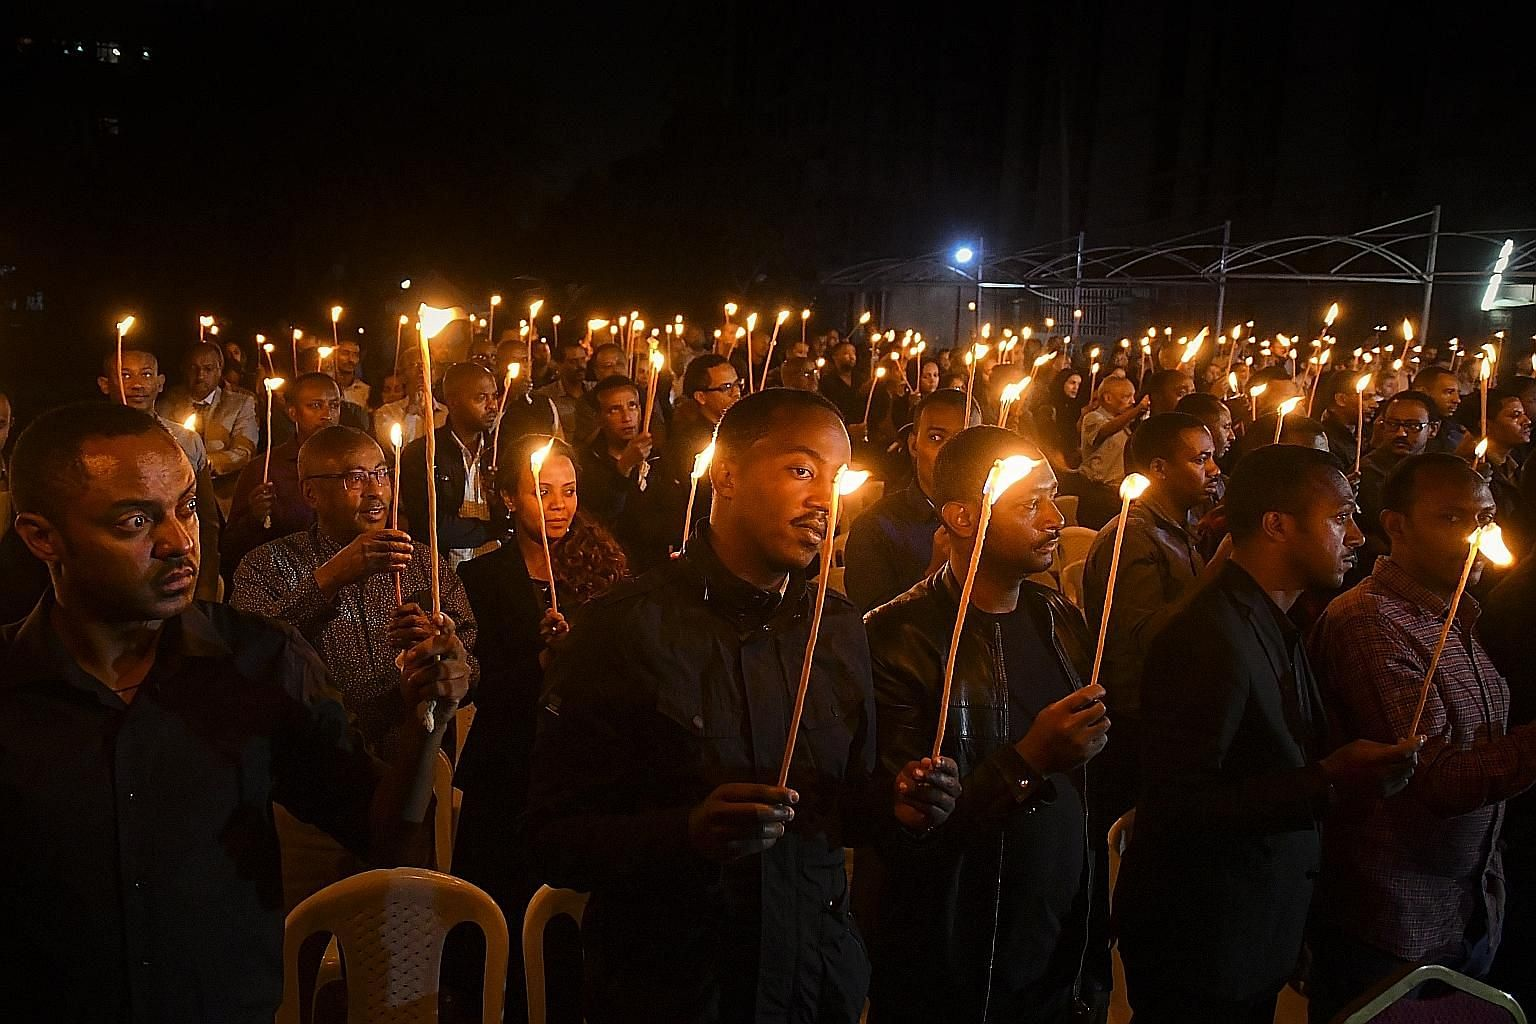 A memorial service for UN staff killed in the crash, held at the UN Economic Commission for Africa headquarters in Addis Ababa. Family members of the victims, among others, attending a memorial service in Addis Ababa on Tuesday for the 157 people who